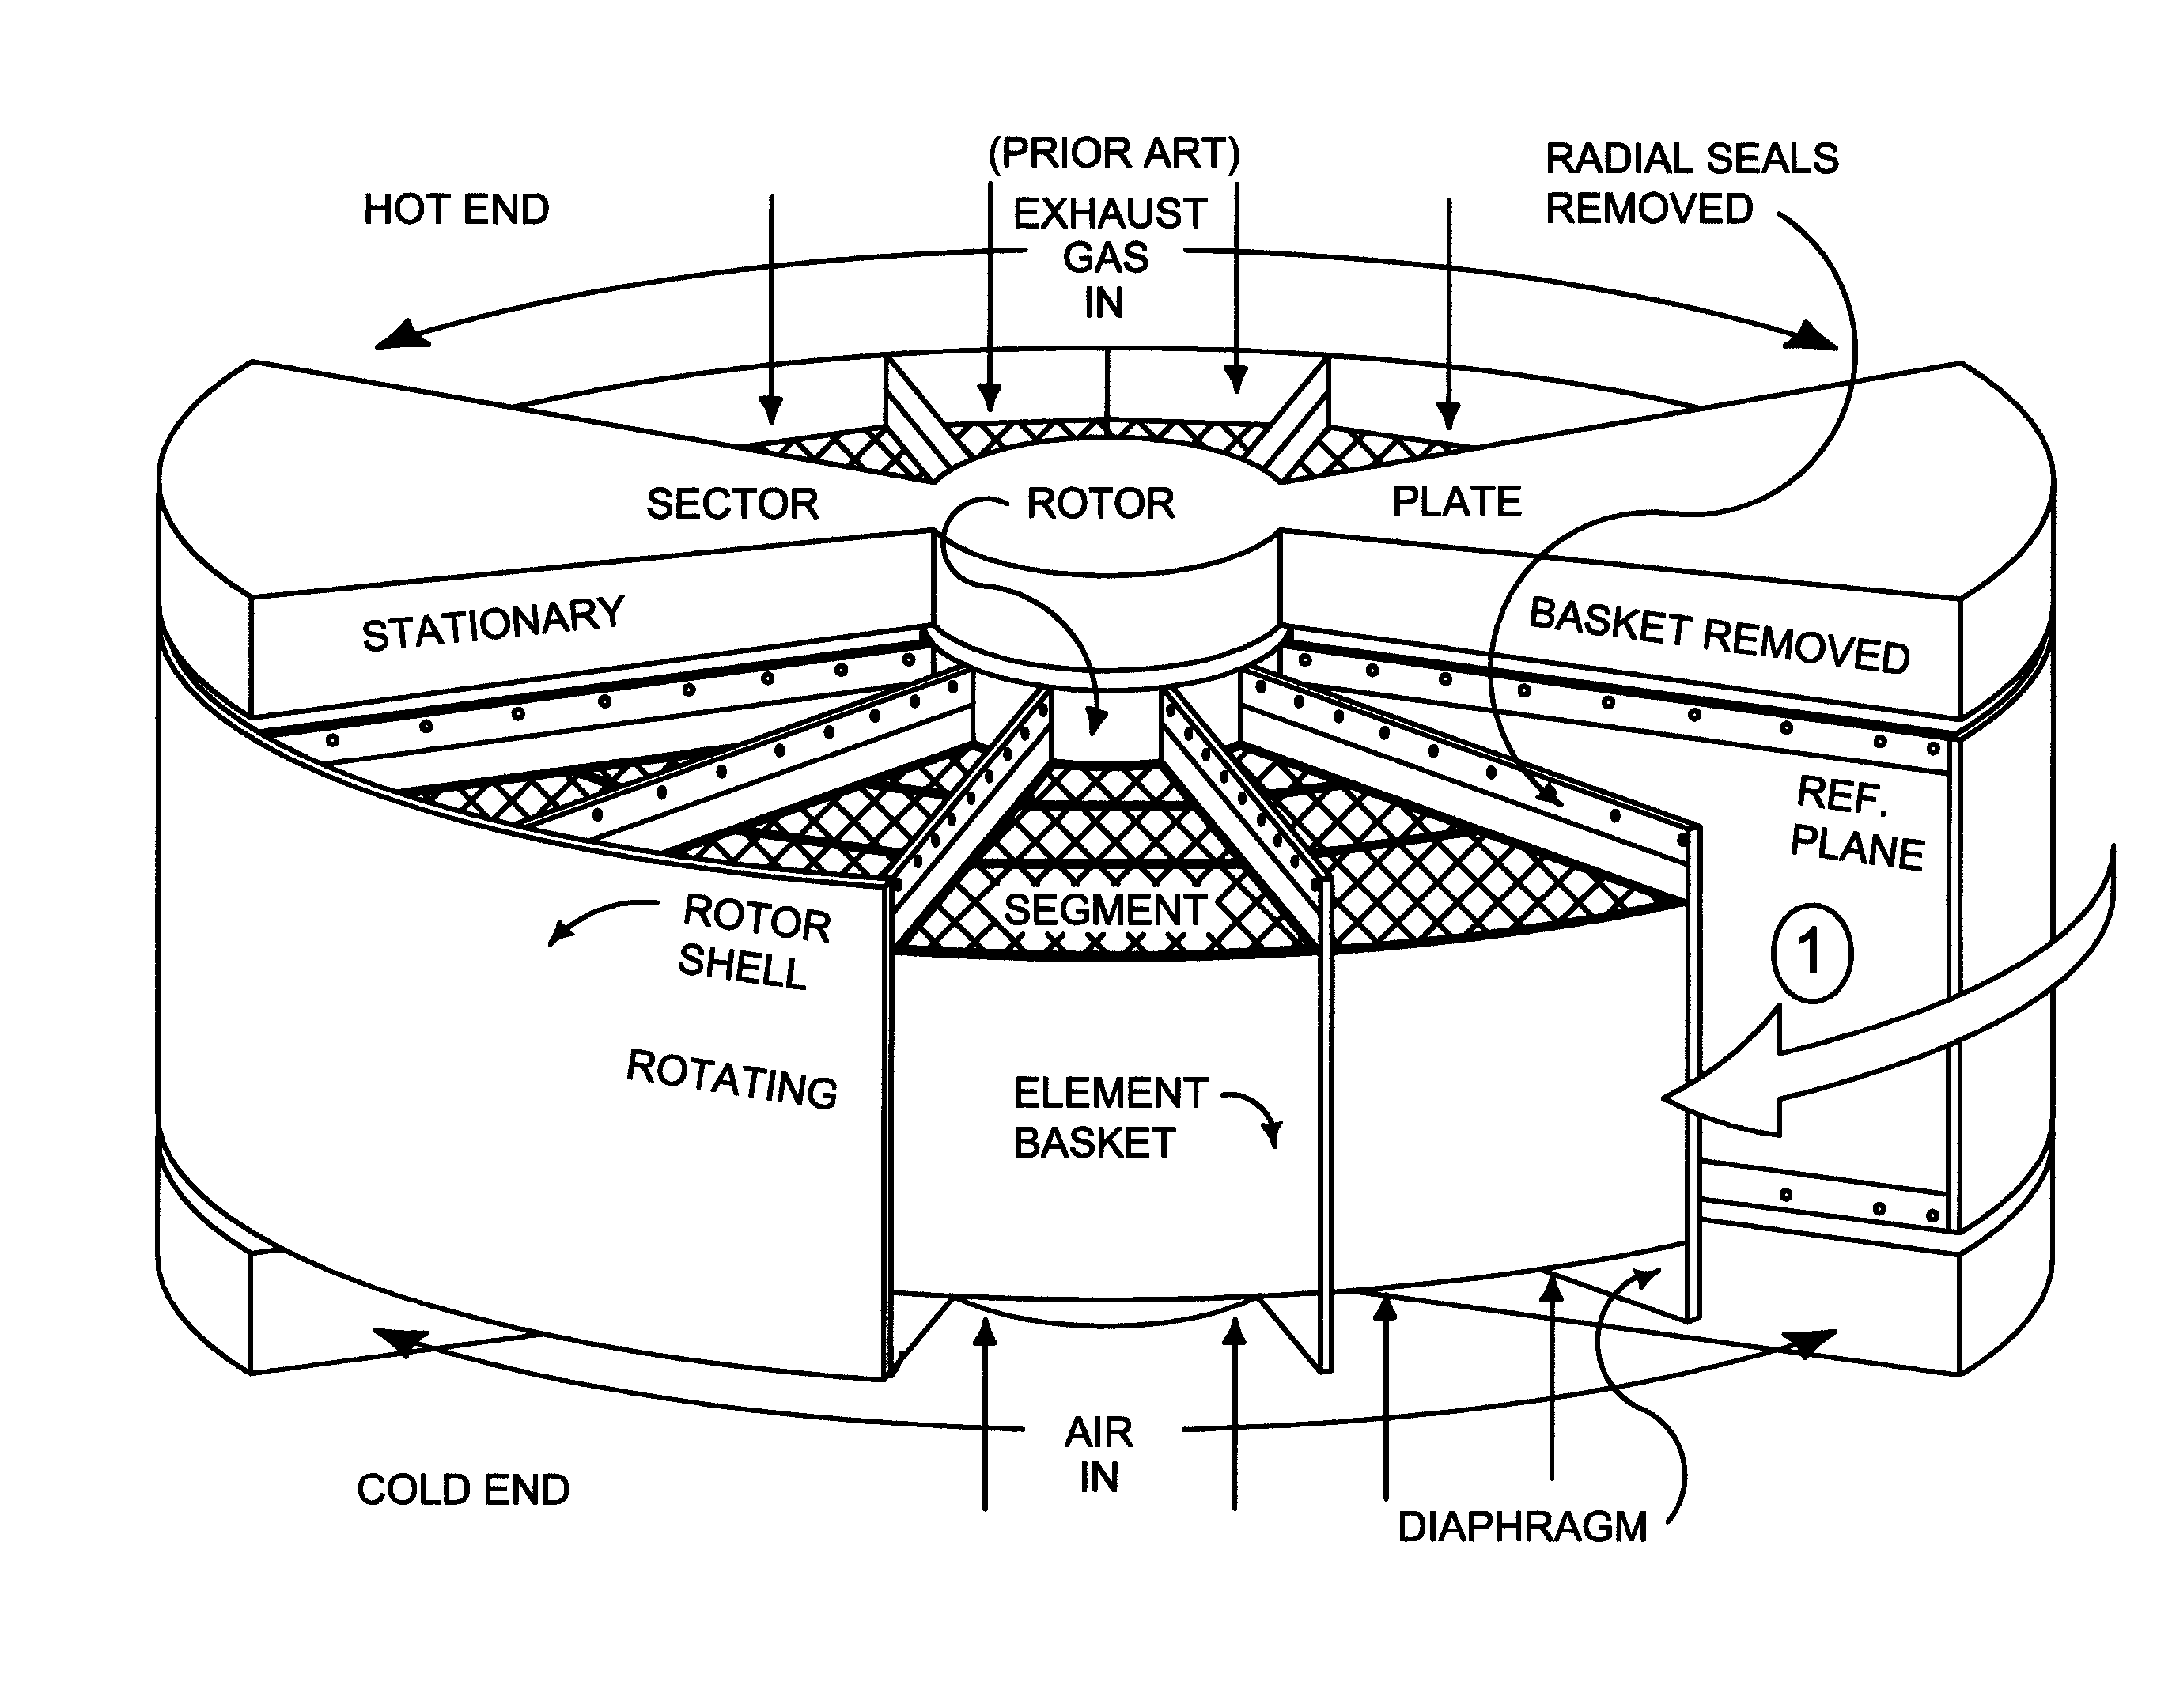 Fibrous Root System Diagram moreover Flower moreover 20137 in addition 707 Parts Of A Plant And A Flower moreover Lifecycle. on parts of a plant diagrams